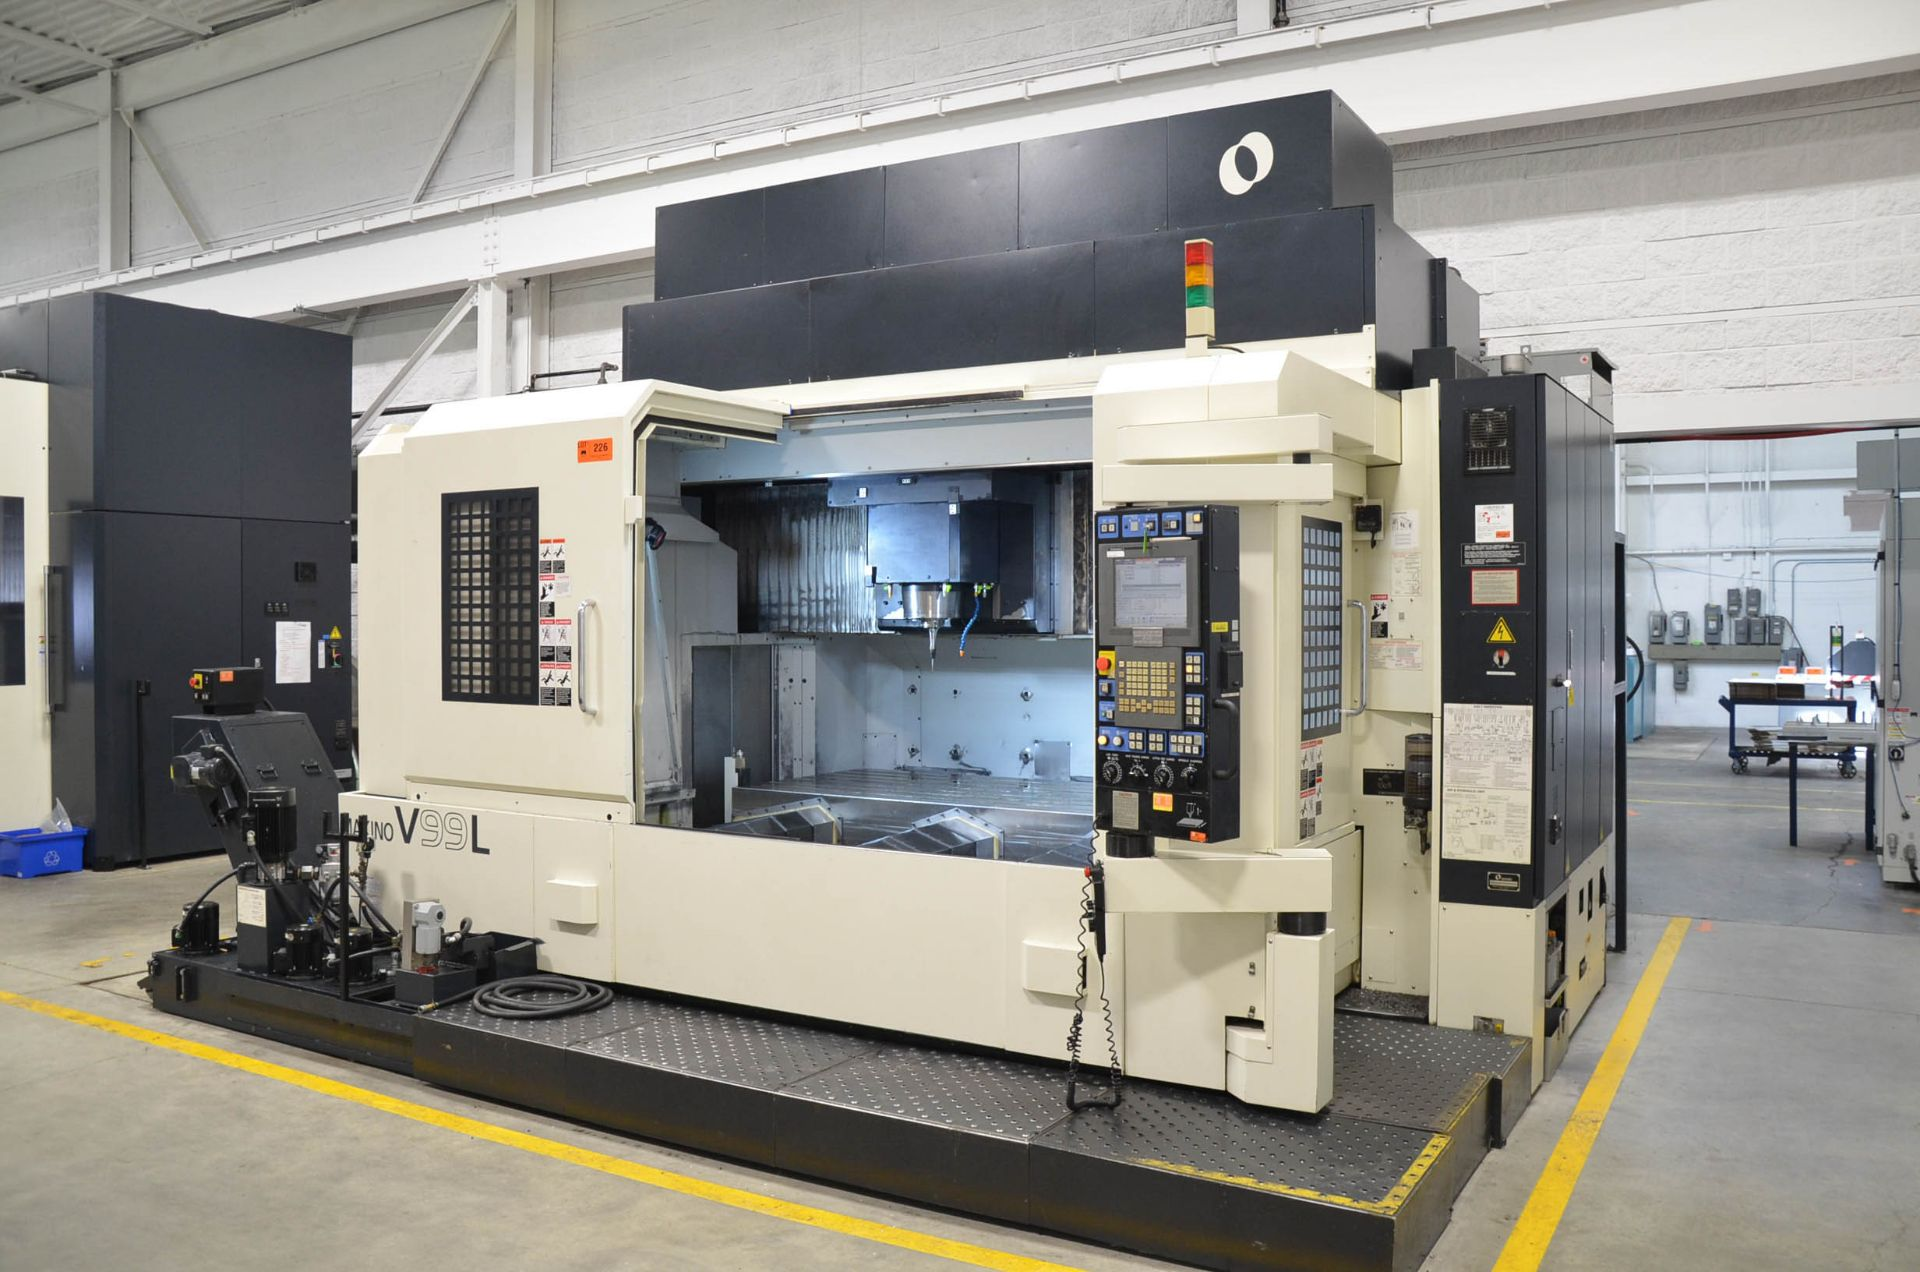 MAKINO (2008) V99L(#50) CNC VERTICAL MACHINING CENTER WITH MAKINO PROFESSIONAL 5 CNC CONTROL, 39. - Image 3 of 12